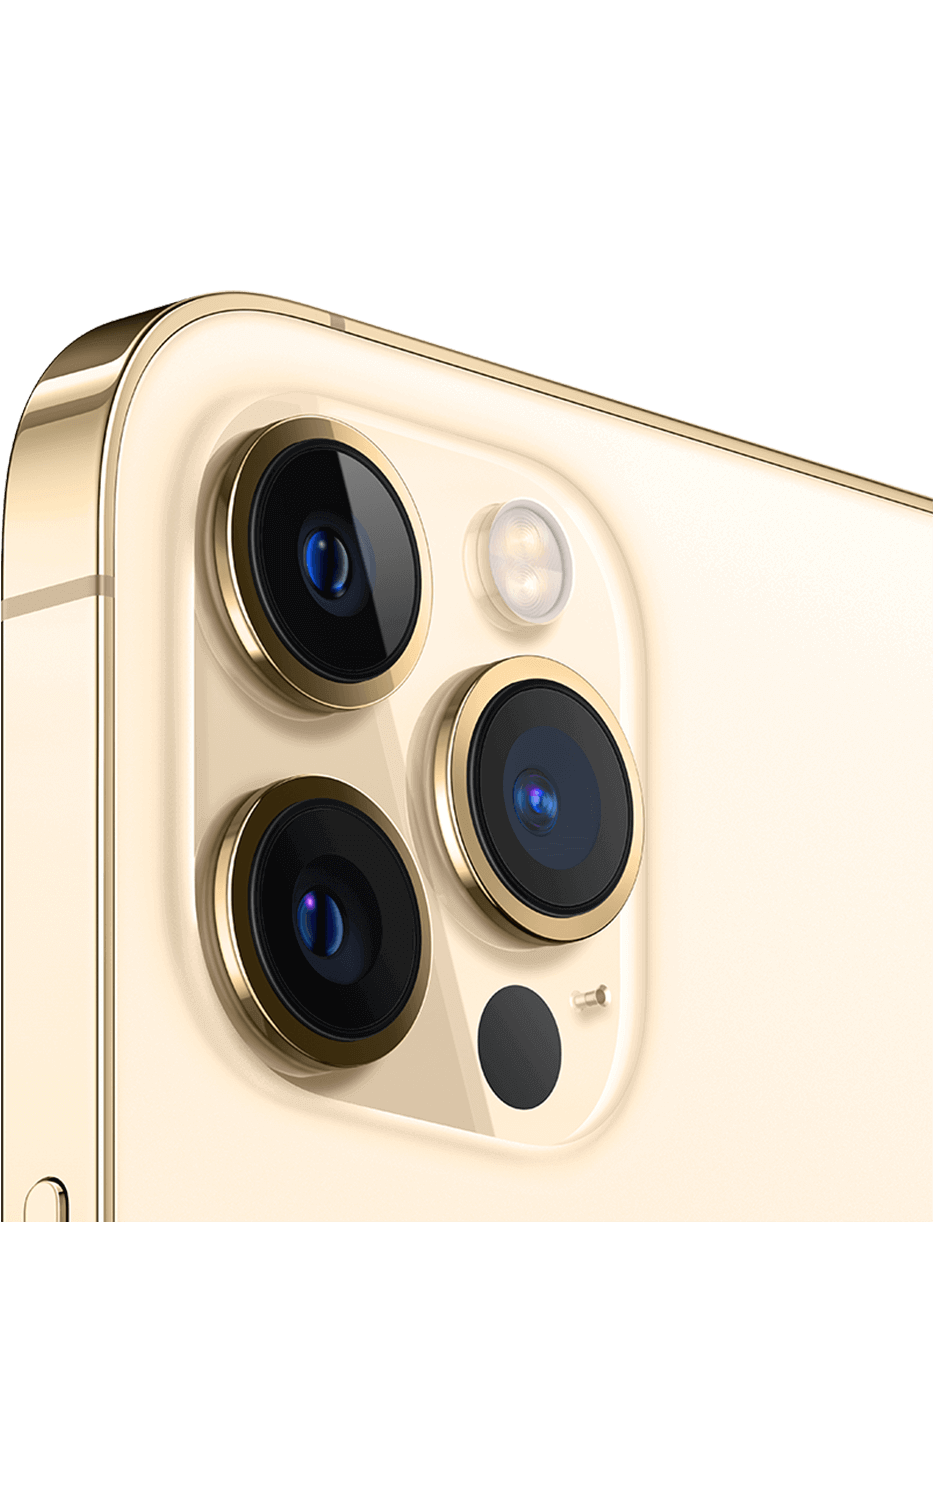 Left View iPhone 12 Pro Max Gold